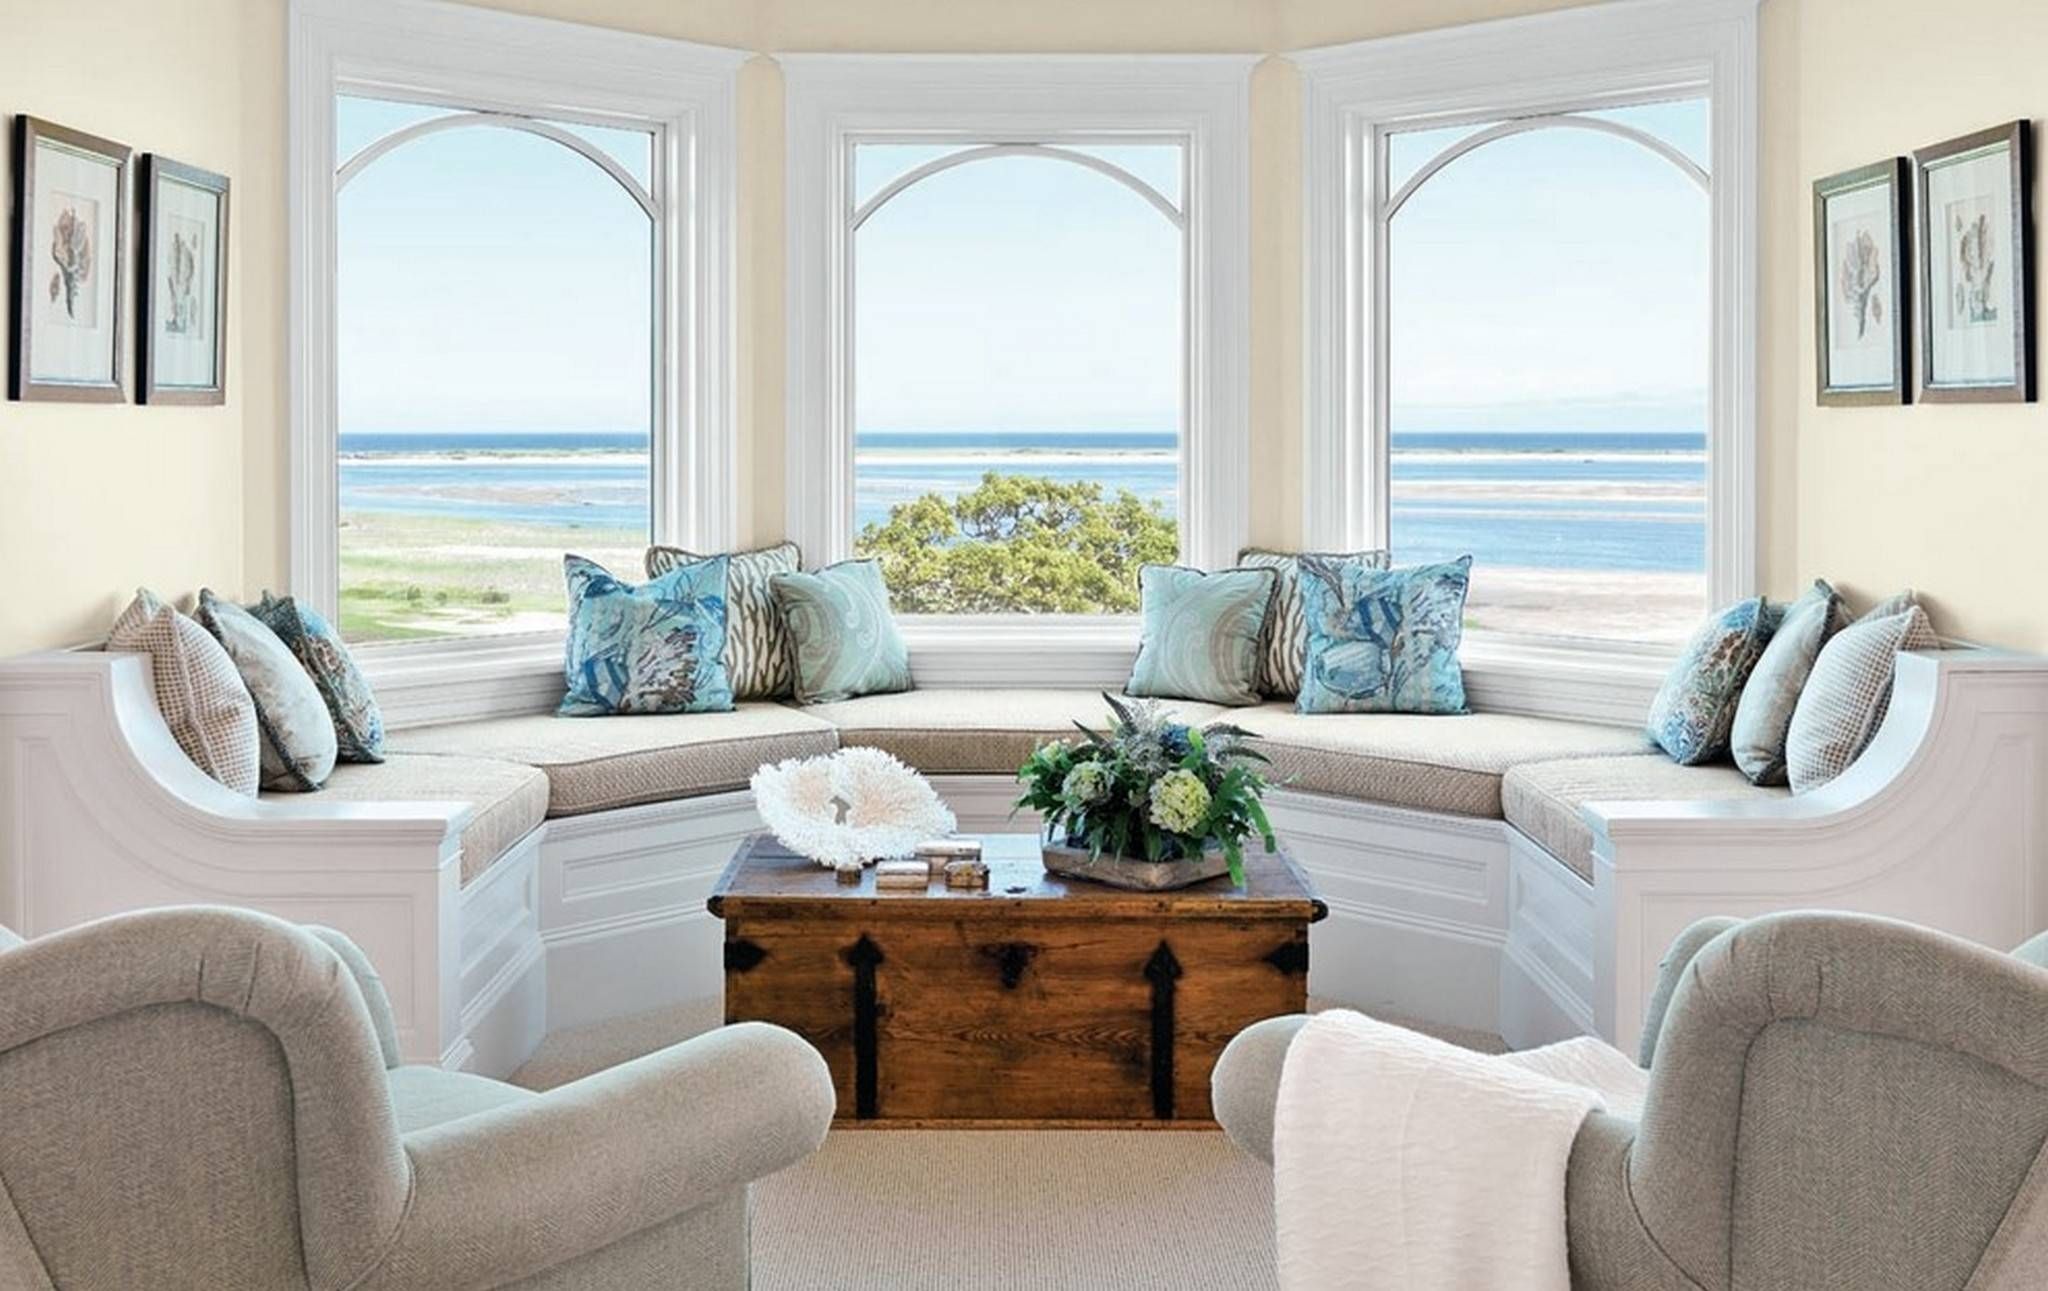 Lovely Bay Window Sofa 73 About Remodel Sofa Room Ideas With Bay pertaining to Bay Window Sofas (Image 12 of 15)